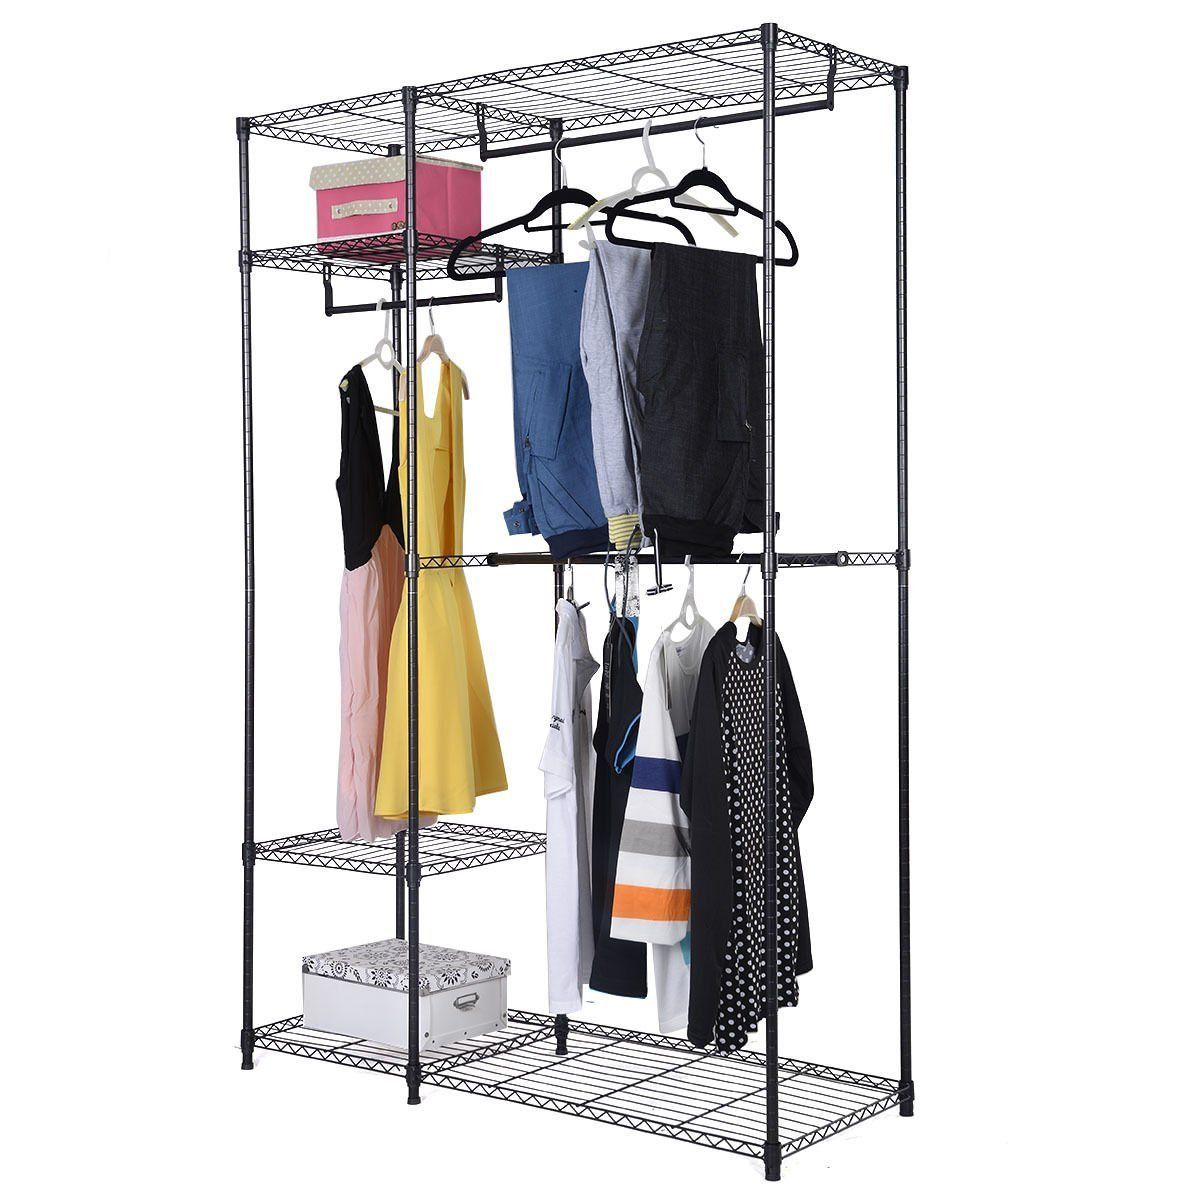 Clothes Storage Systems Safstar Portable Clothes Wardrobe Garment Rack Home Closet